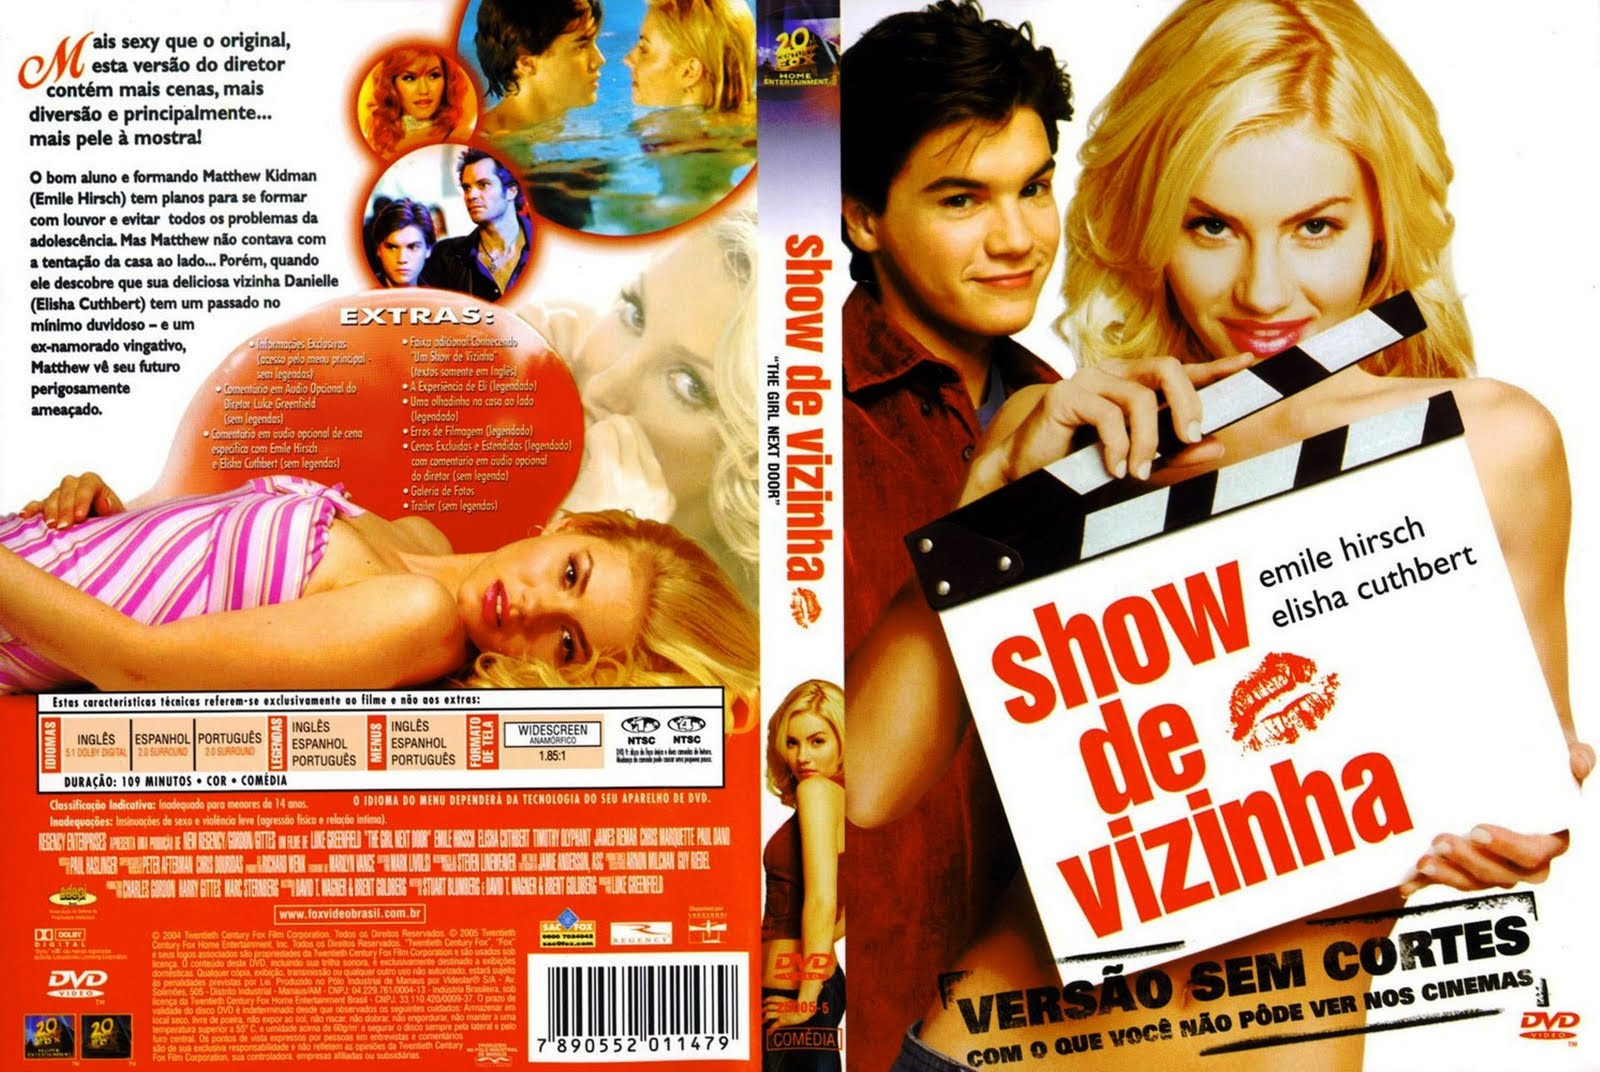 J0q3mhl Show de Vizinha Torrent   BluRay Rip 1080p Dual Audio (2004)